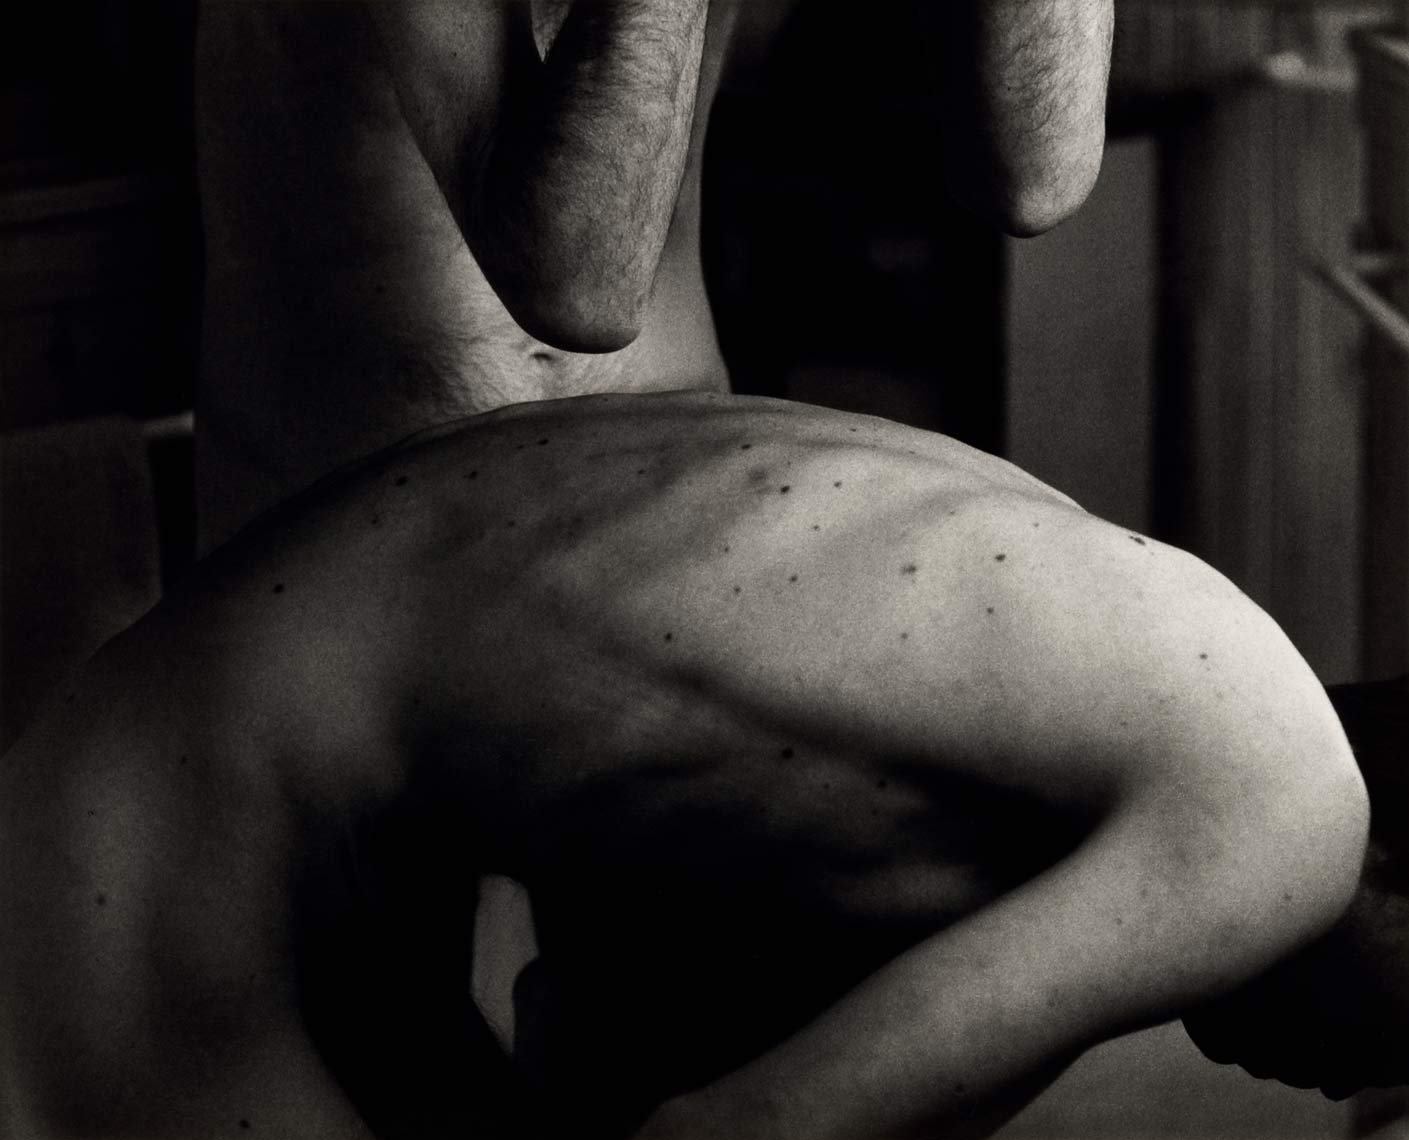 David Lebe; Morning Ritual 19, 1994, black and white photograph about living with AIDS